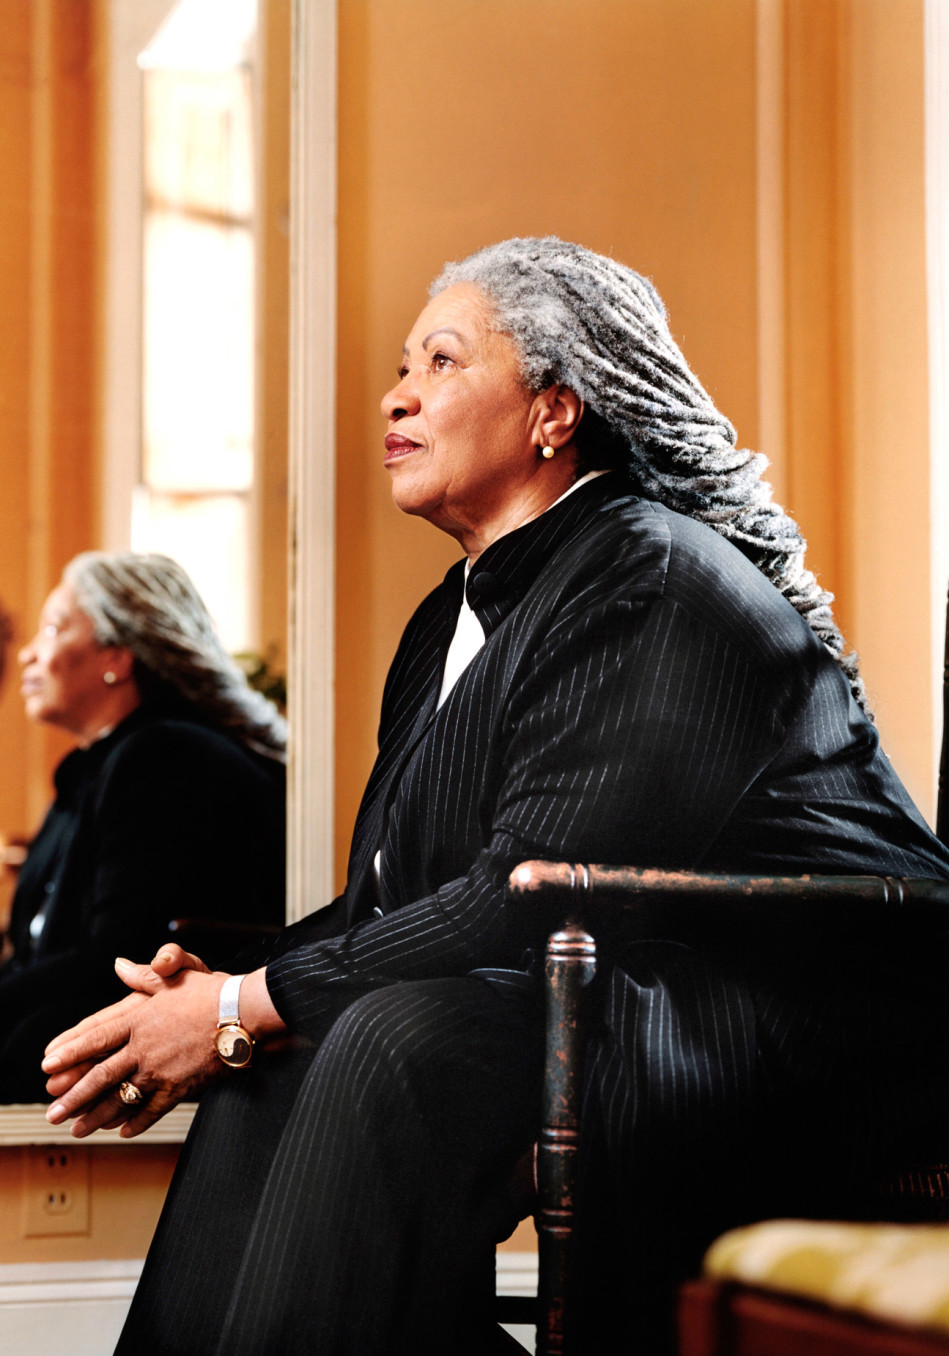 """essay home by toni morrison Inaugural edition, december 2008 morrison's essay describes a world free of racial hierarchy as """"dreamscape"""" and unrealistic morrison, toni """"home."""